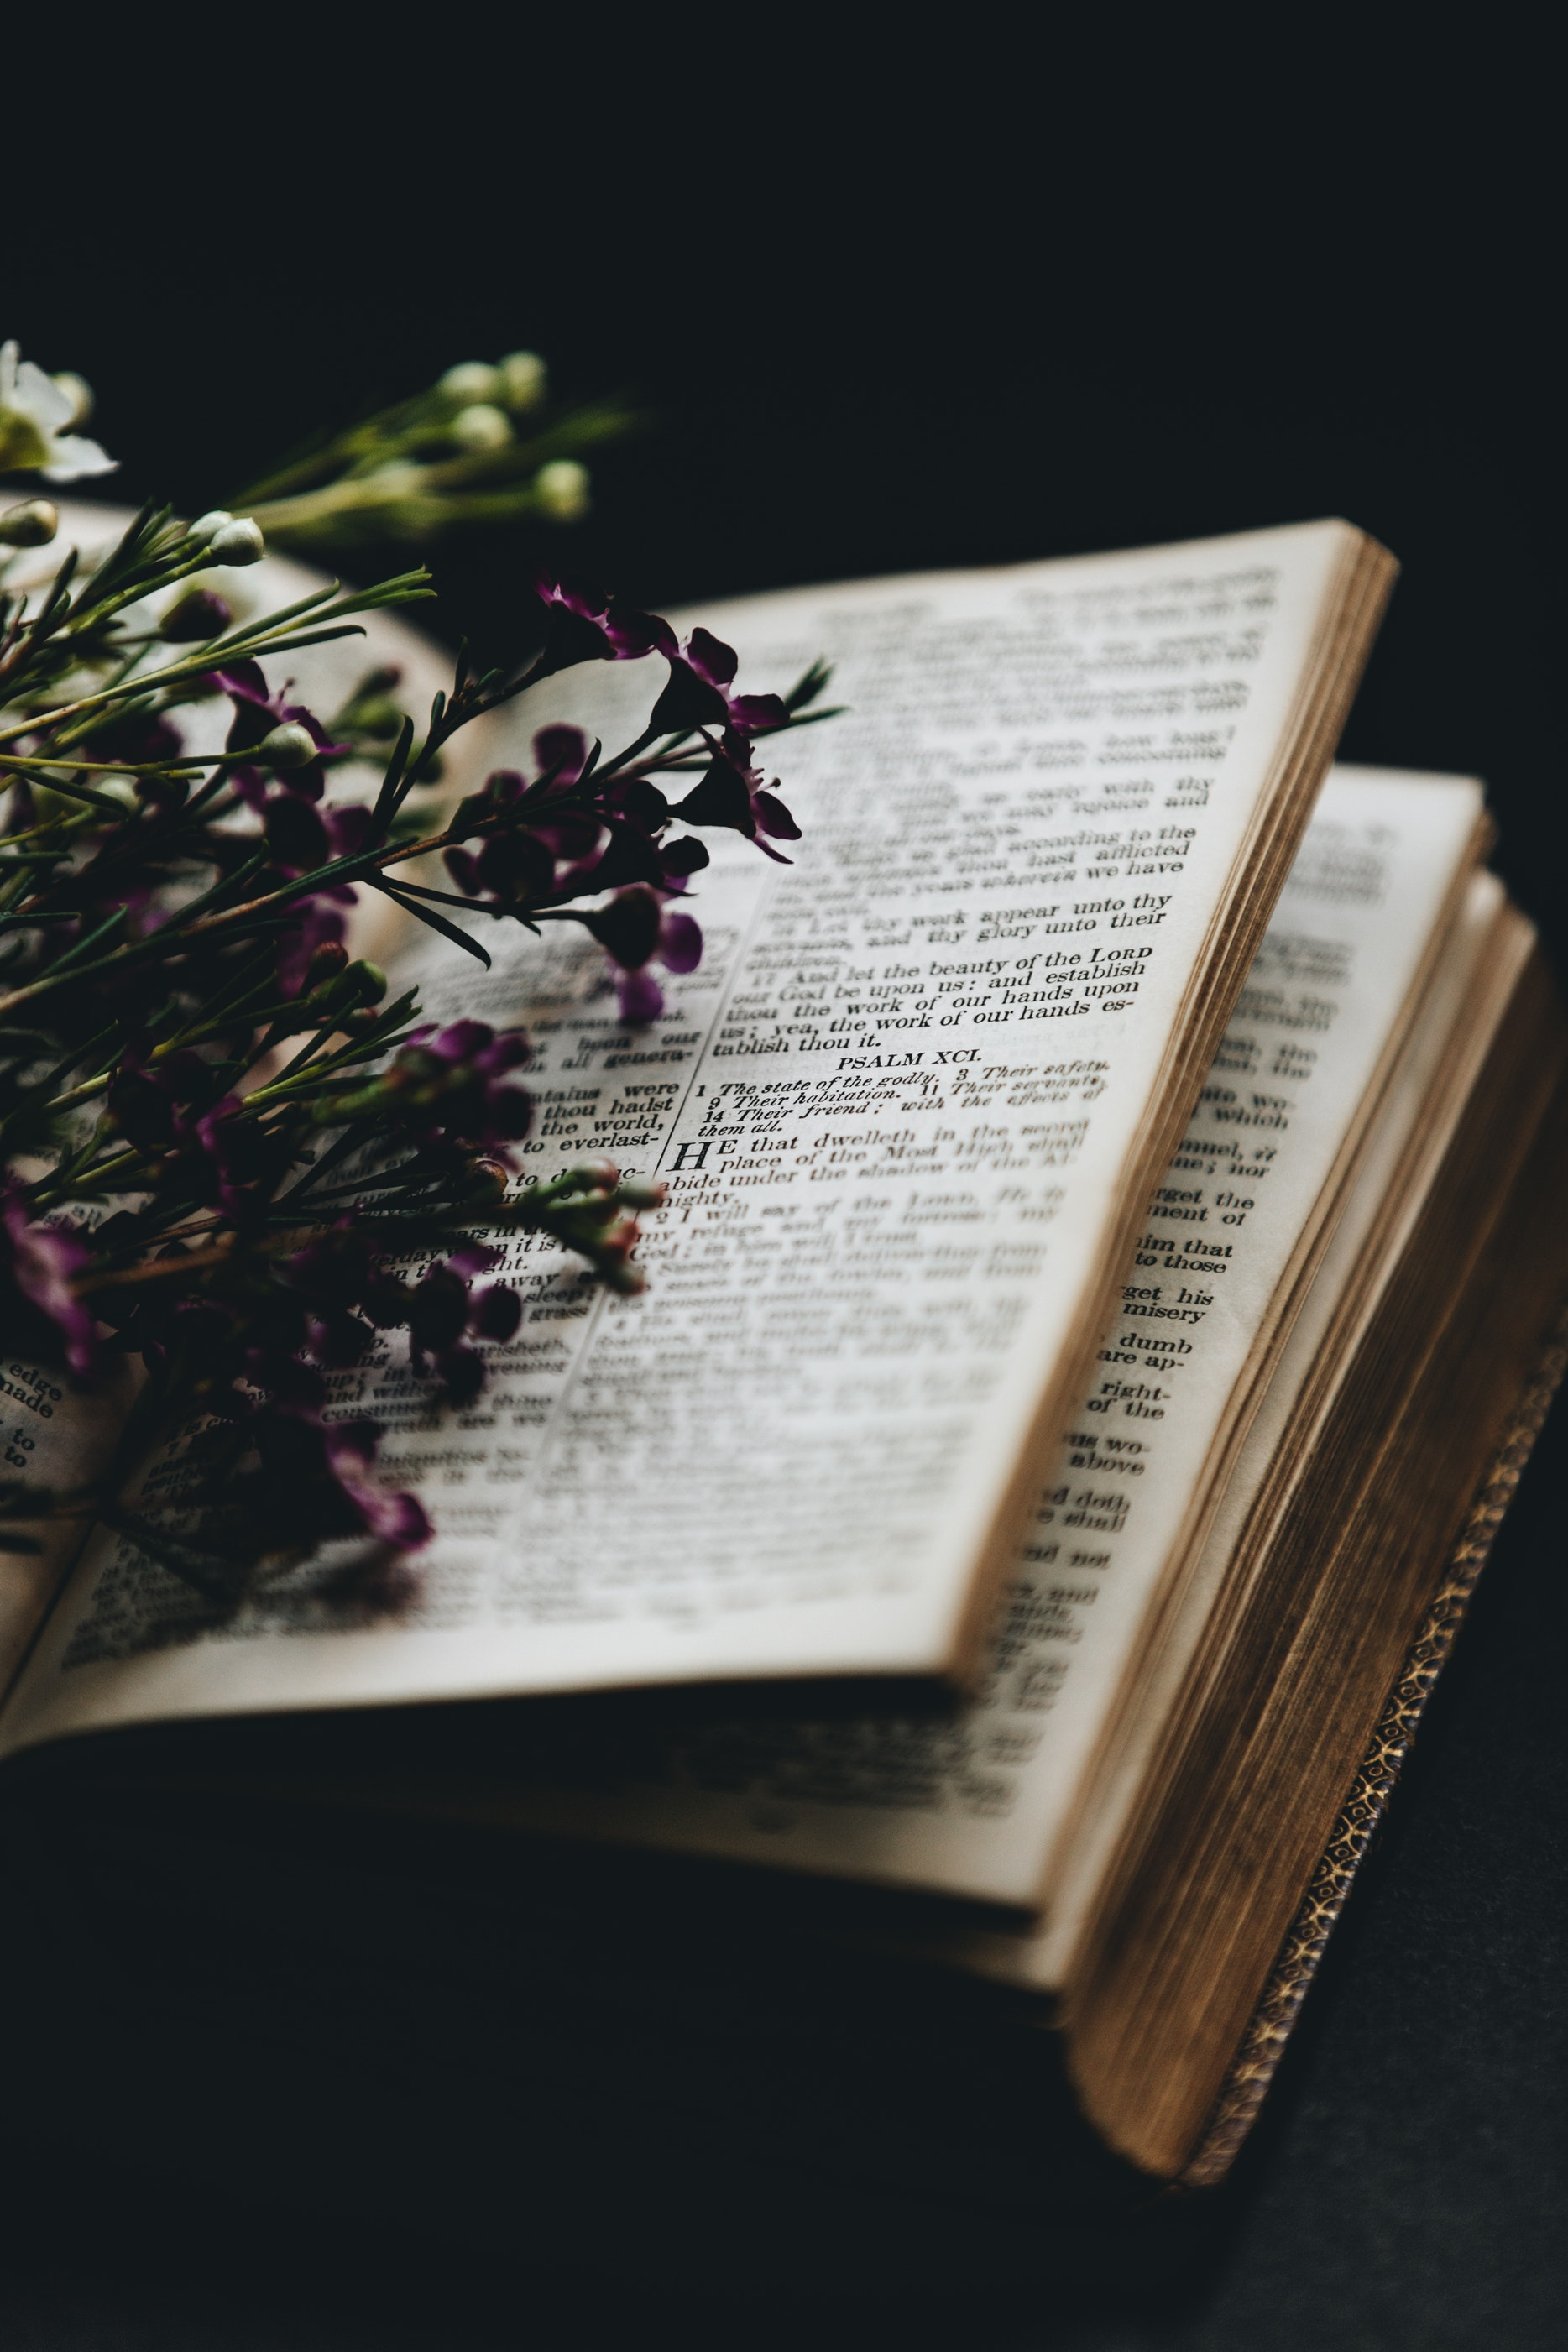 Psalms with purple flower